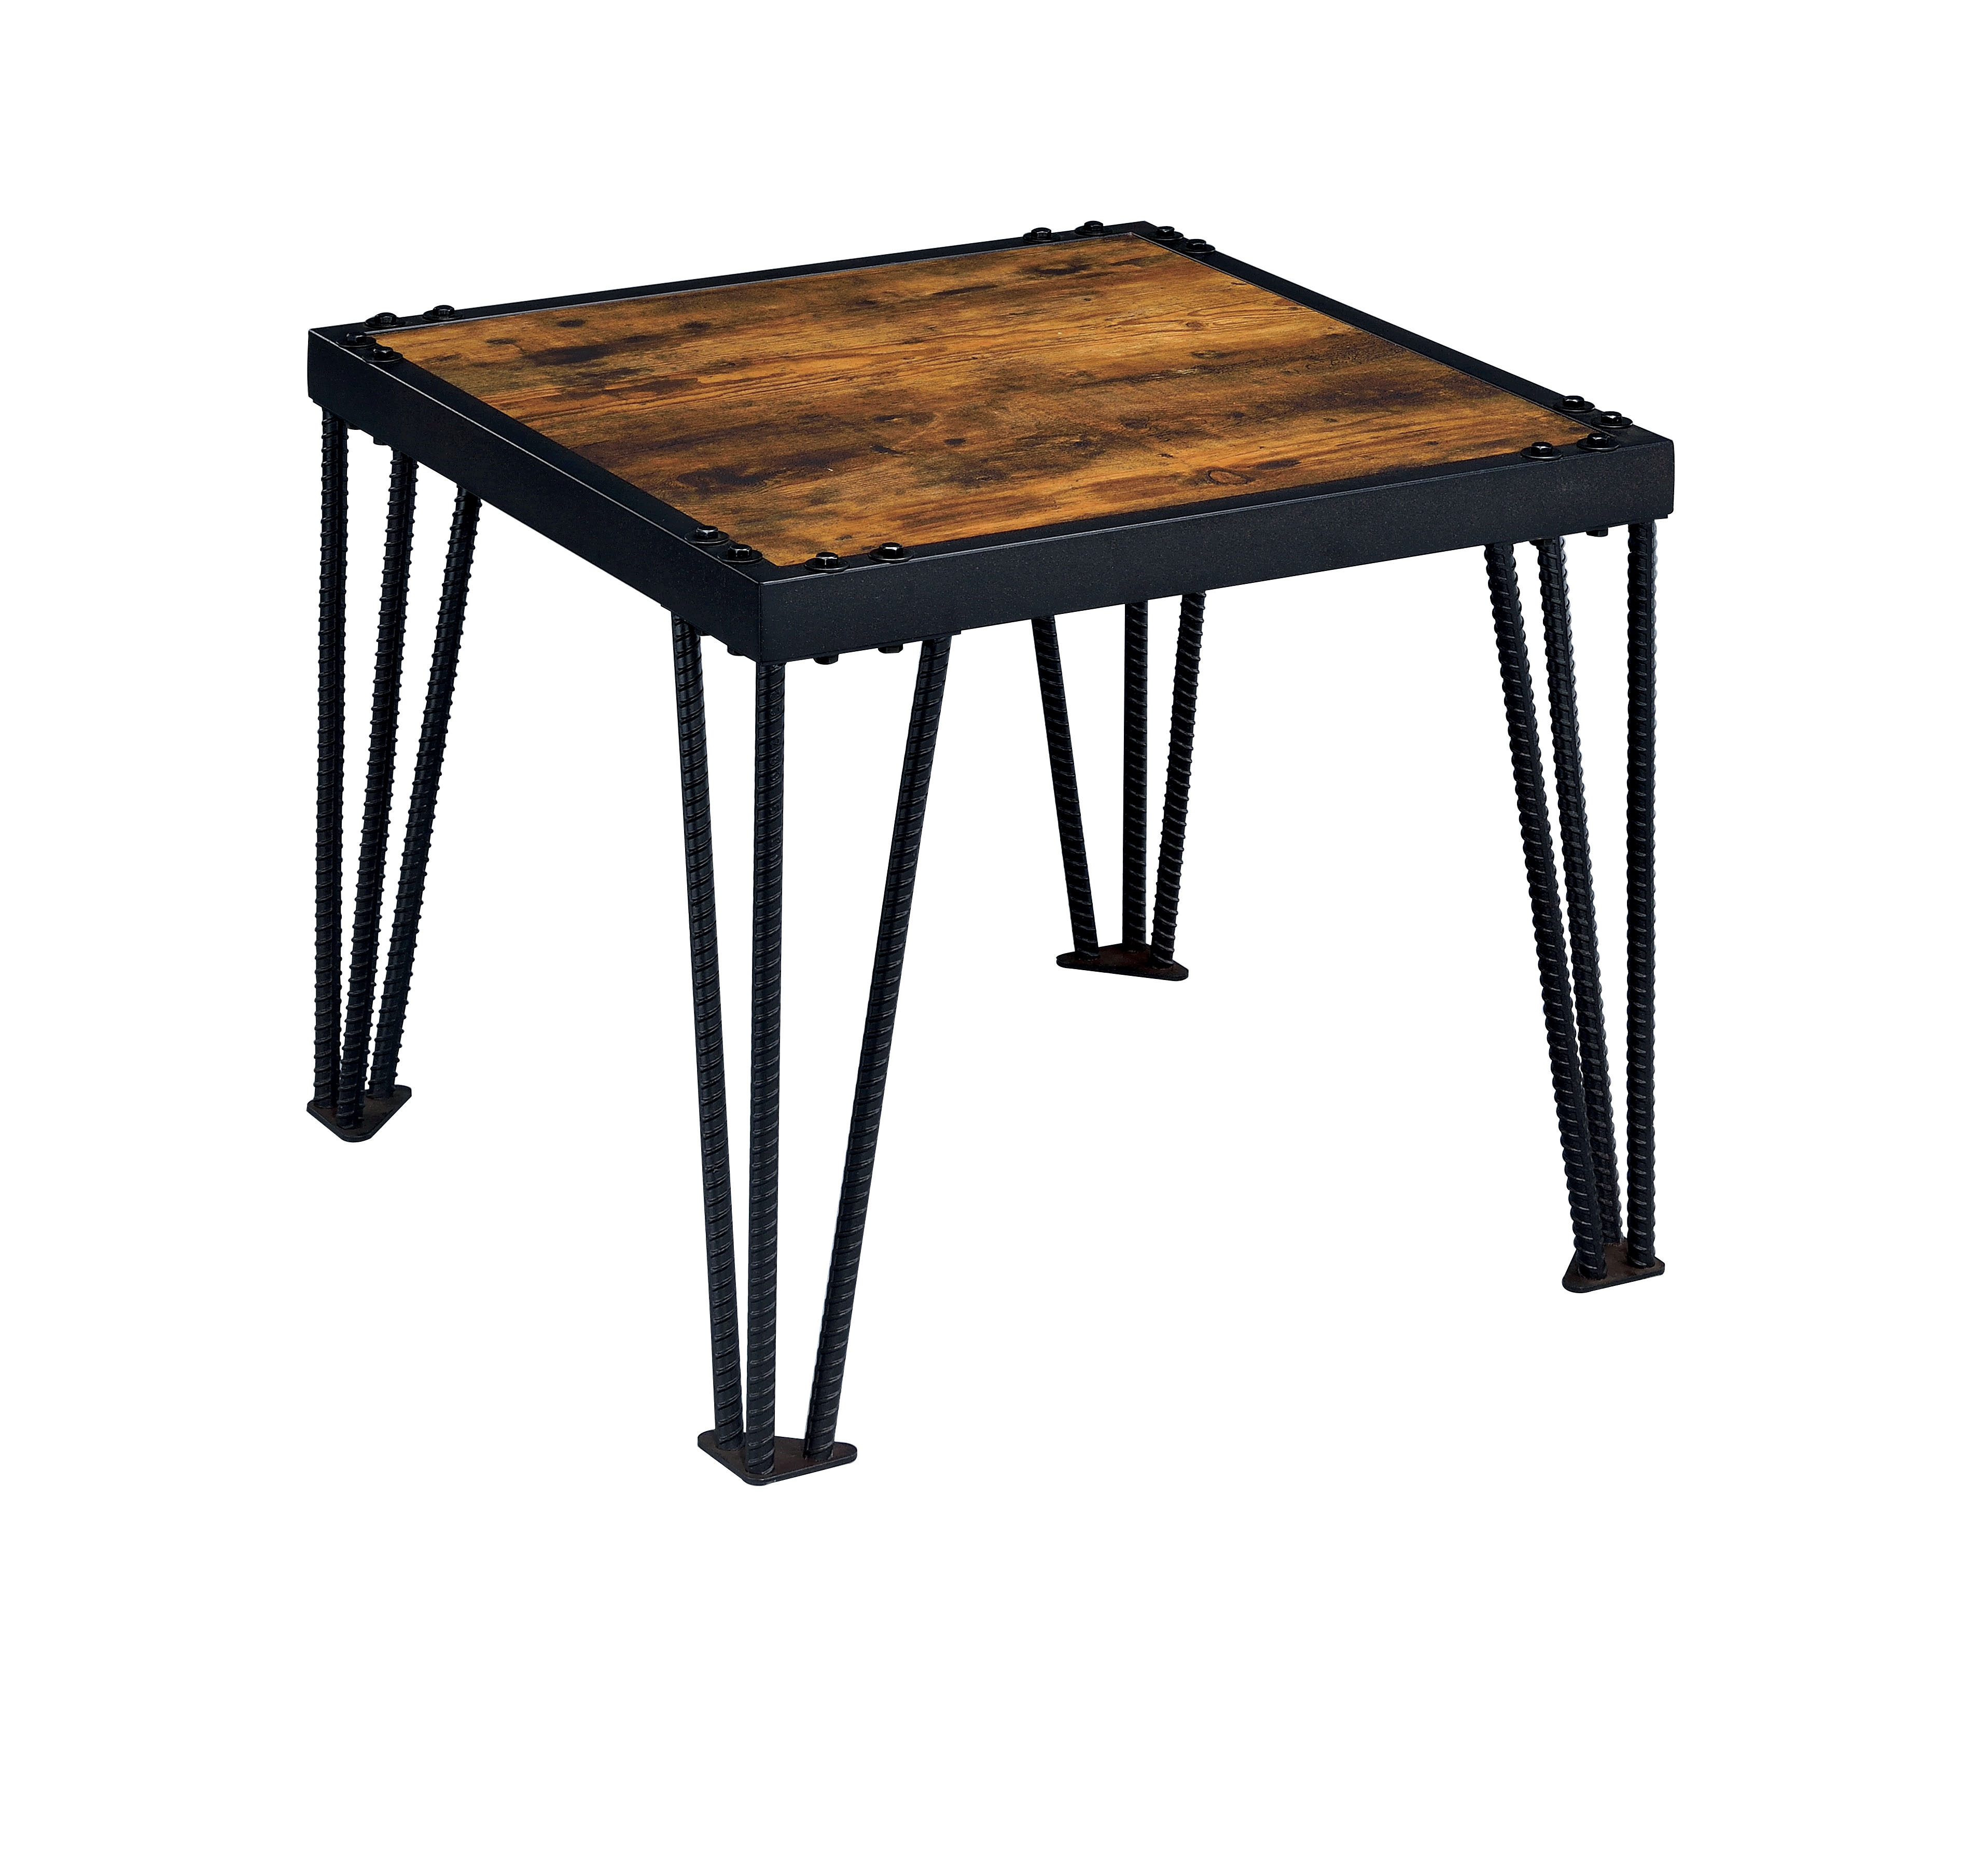 furniture america mally industrial style end table inch high accent tables farmhouse hampton bay spring haven pottery barn hammock vintage mirror side metal patio umbrella stand